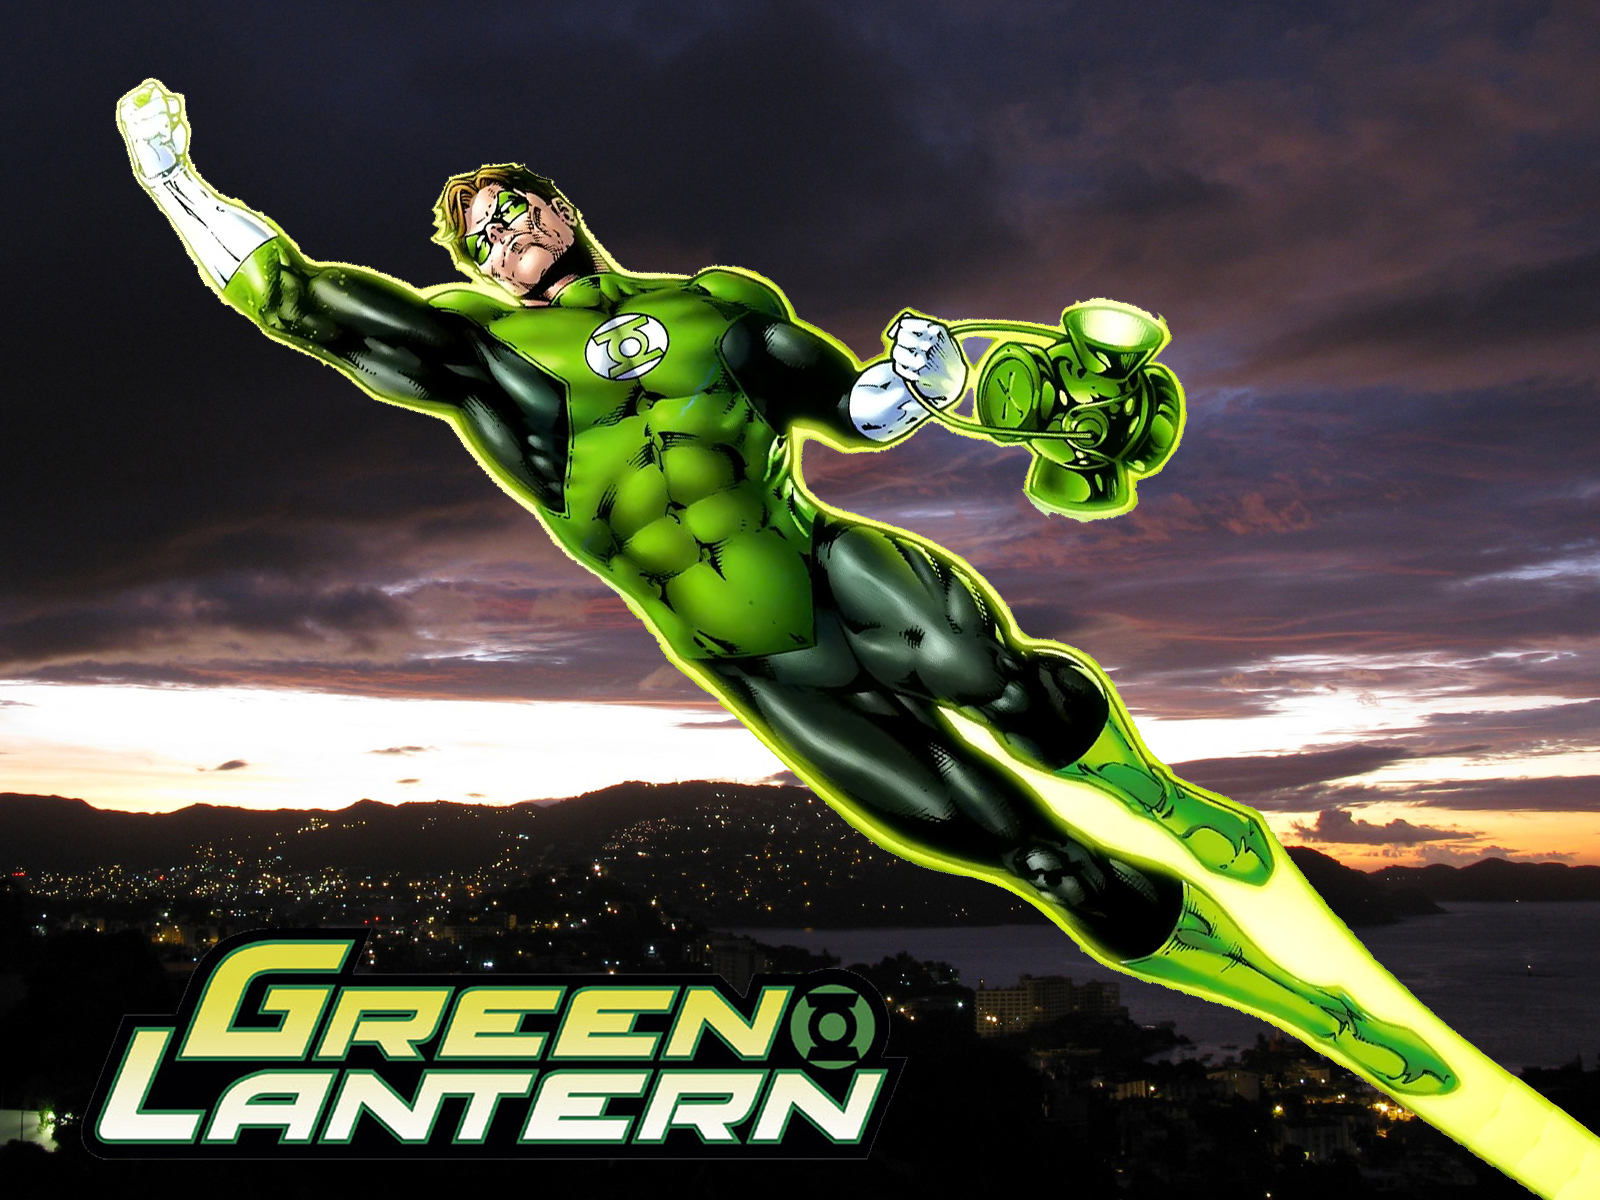 Green Lantern DC Comics HD Wallpaper Download Wallpapers in HD 1600x1200